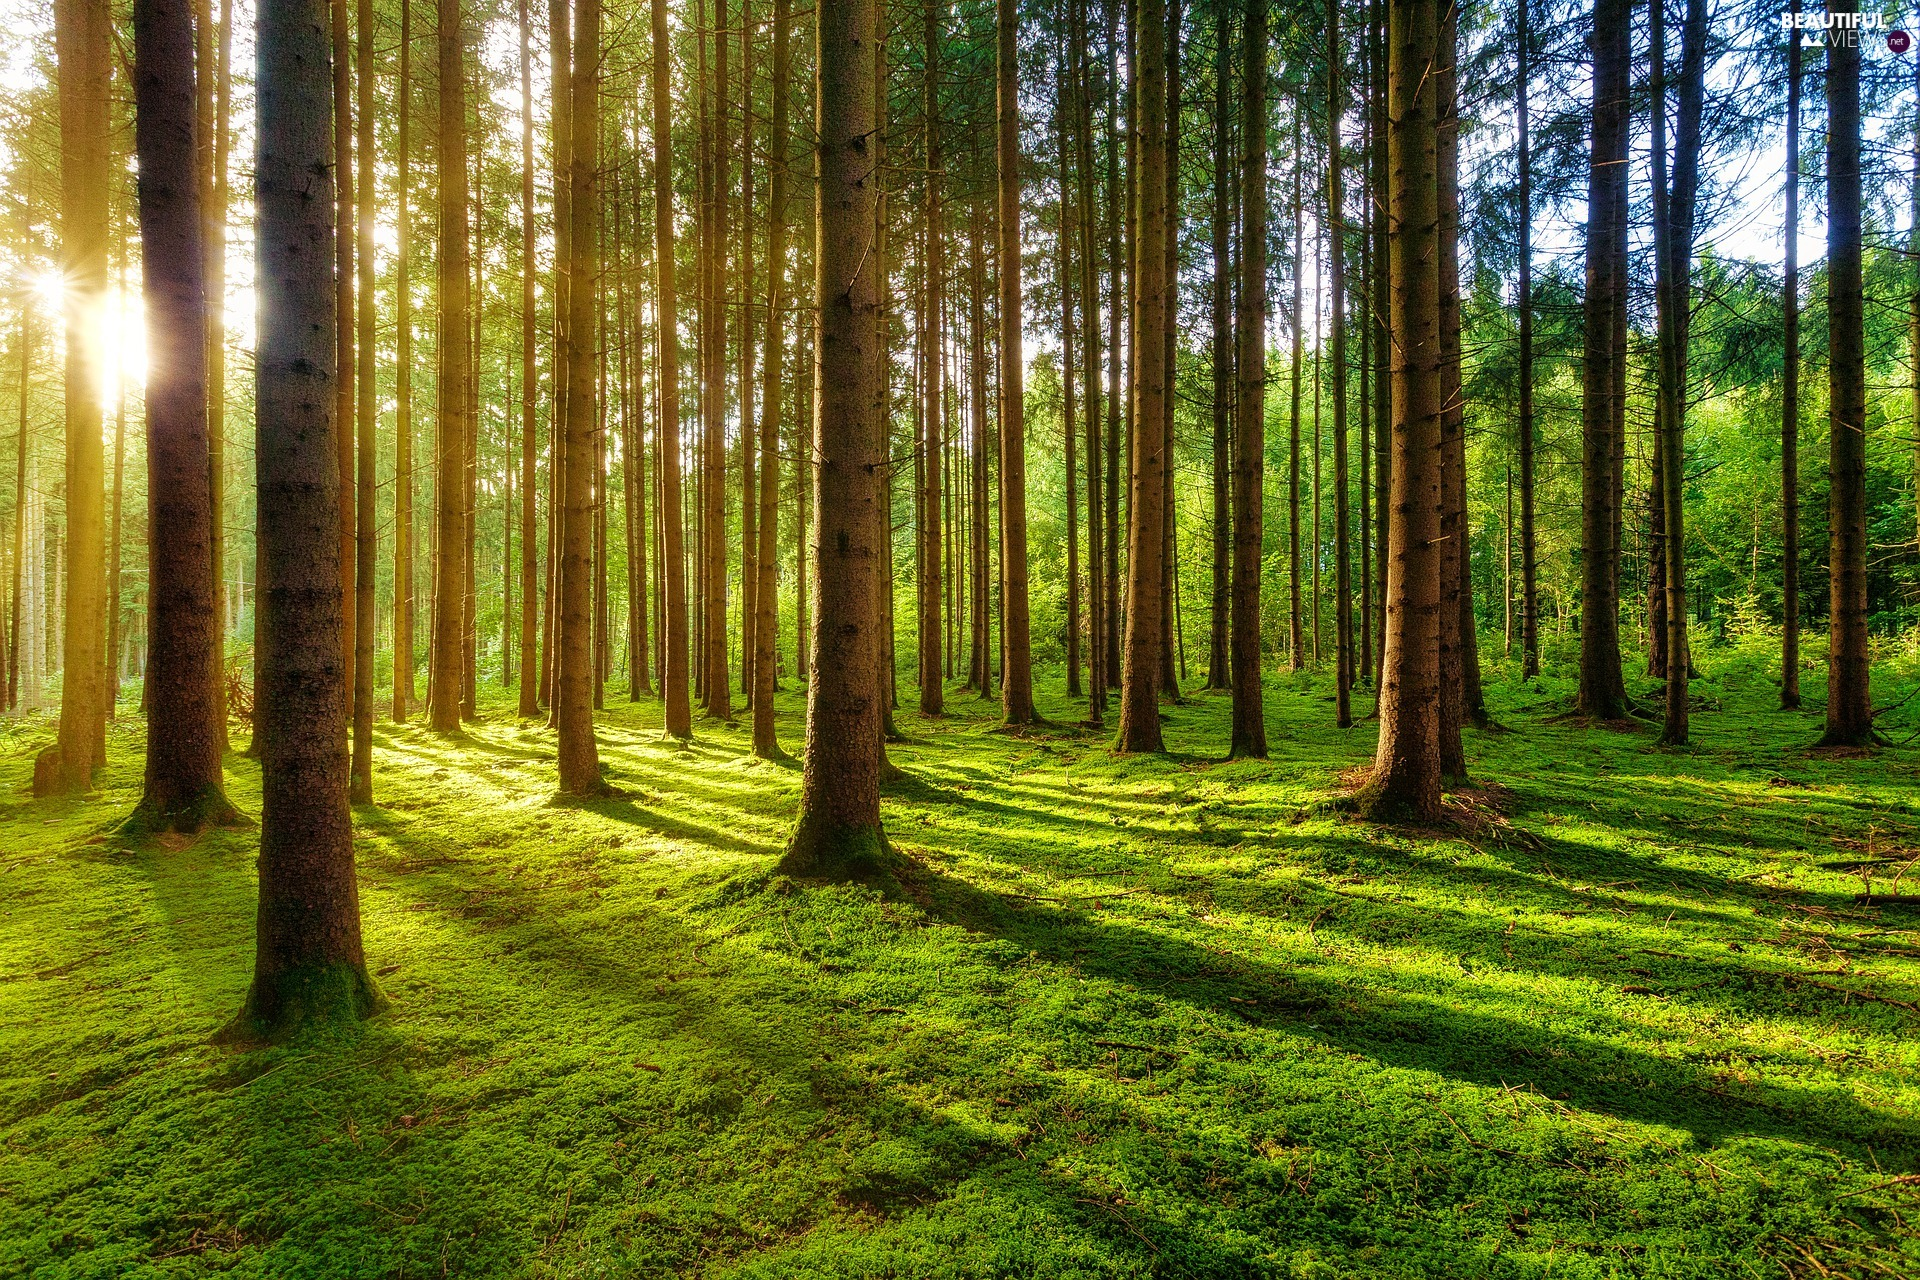 sun, sheathing, trees, luminosity, viewes, forest, forester, sunny, flash, ligh